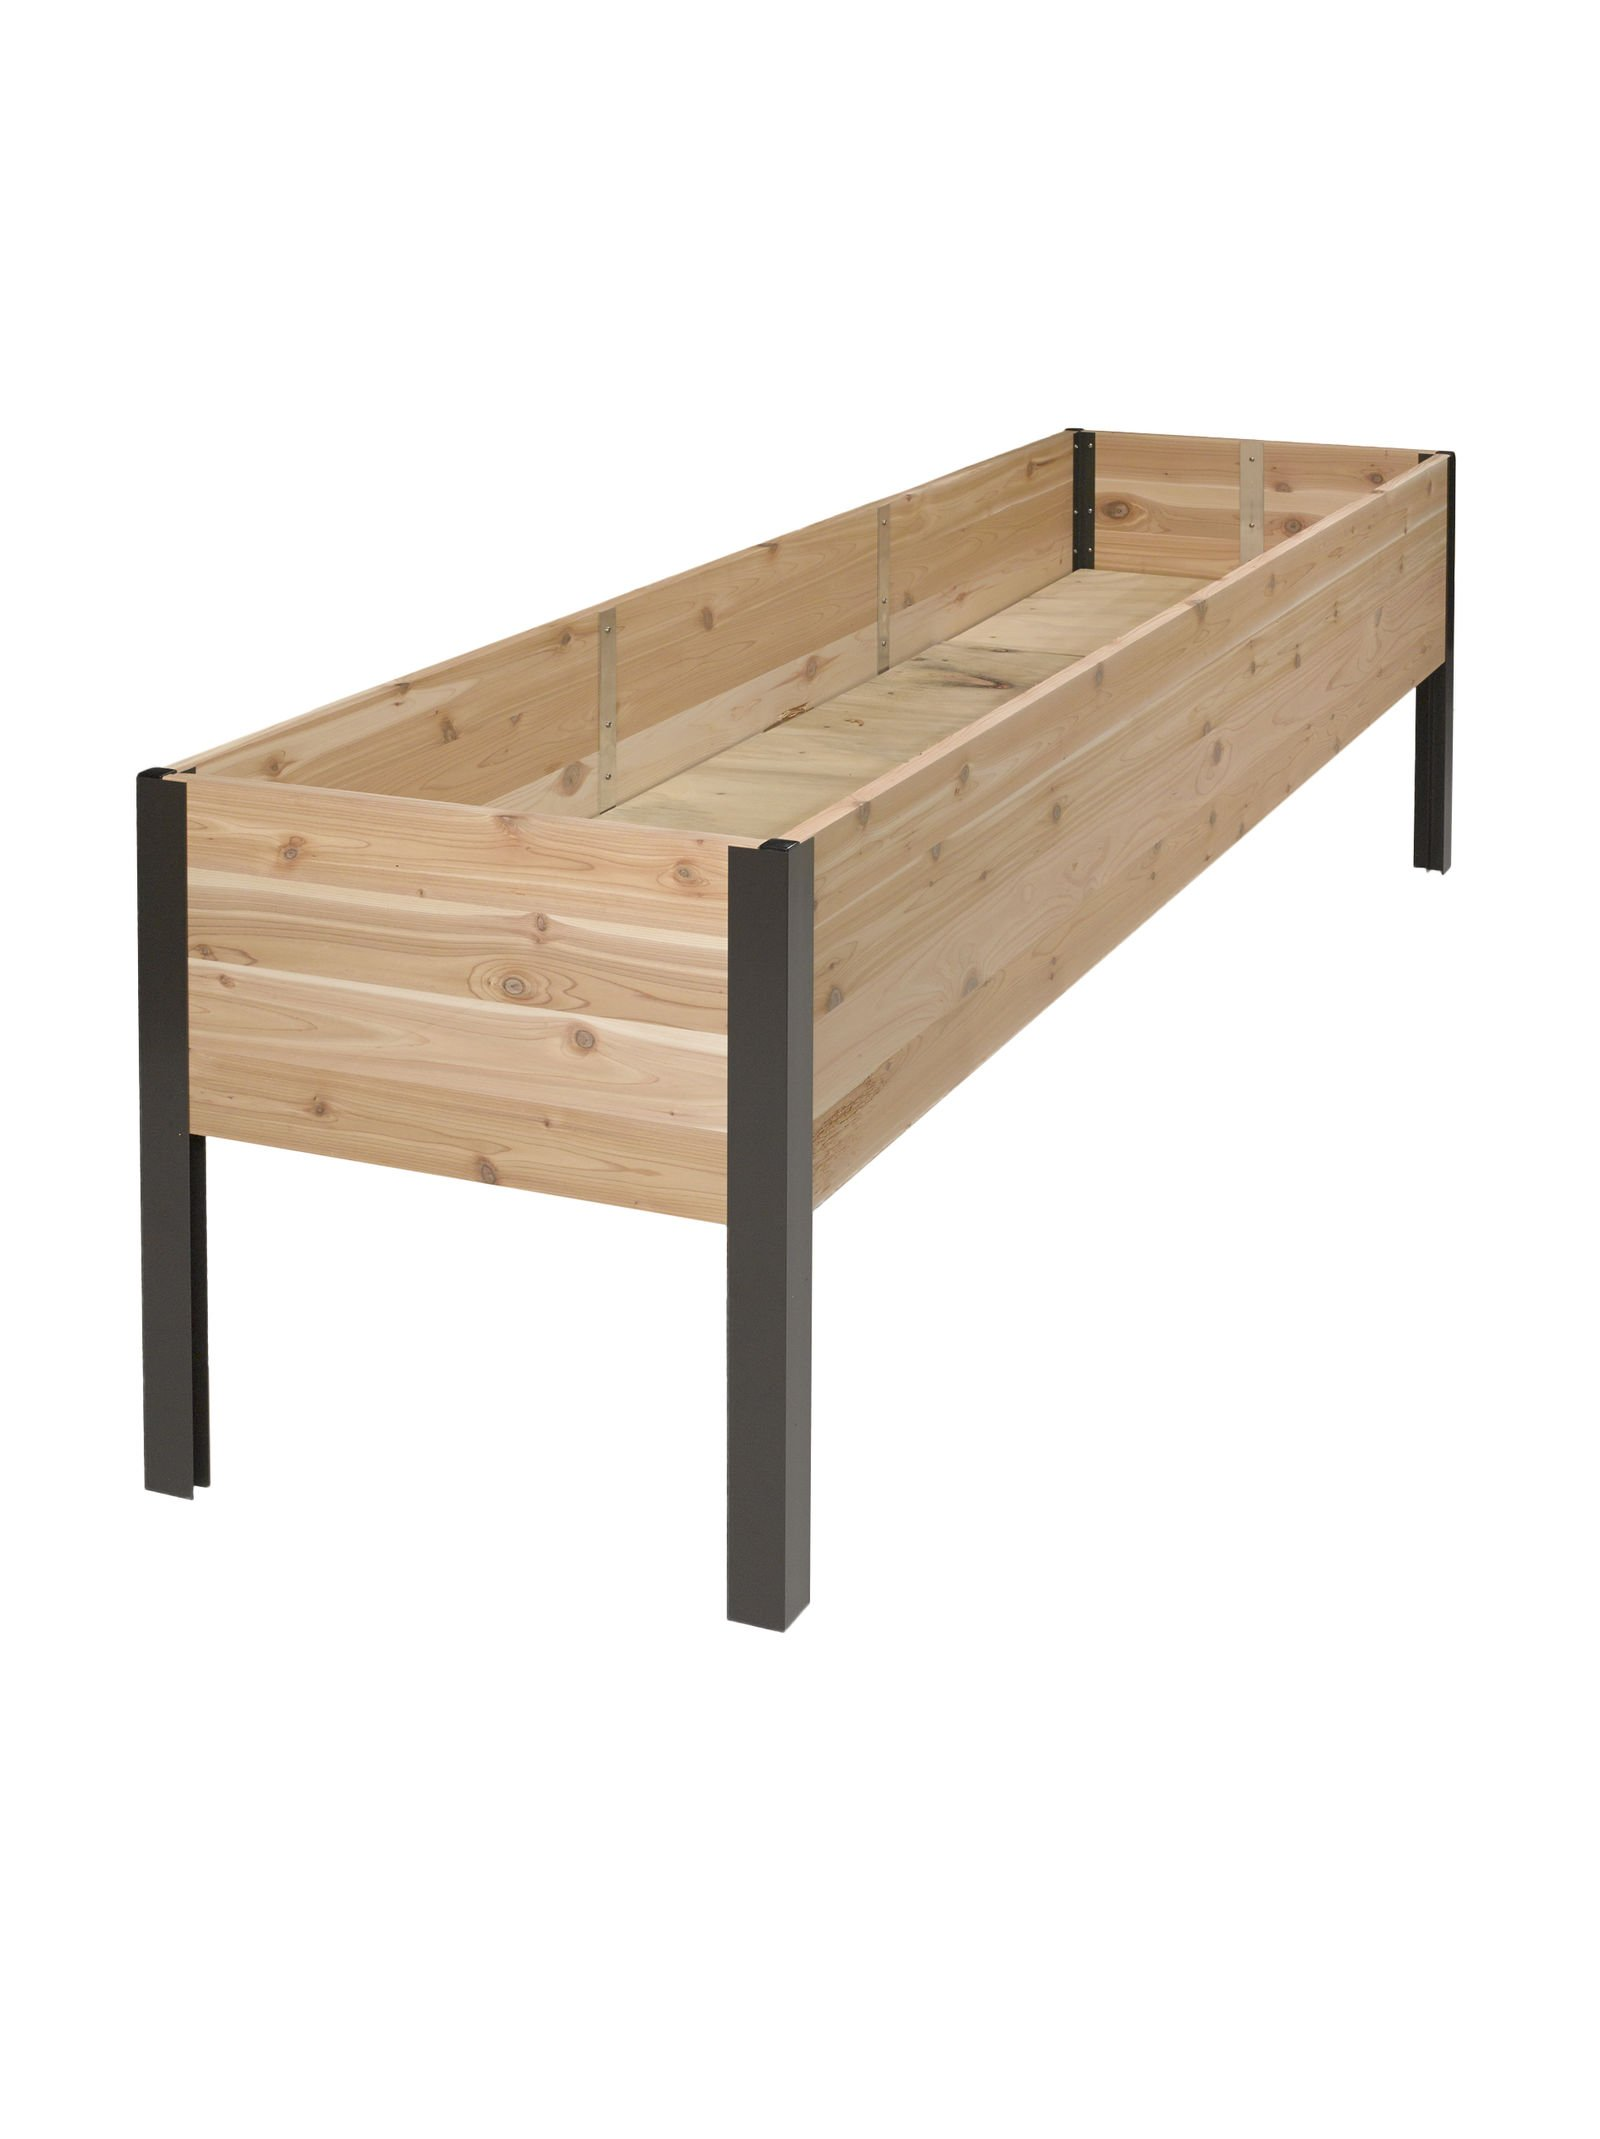 "2' x 8' Raised Garden Bed Elevated Cedar Planter Box Standing Garden 5 <p>At 29"" high, this attractive cedar planter is the perfect height for easy growing, eliminating the need to stoop, bend, kneel and reach. It's a generous 10"" deep so you can grow big plants like tomatoes and root crops like carrots. With 16 square feet of growing space, there's plenty of room for multiple crops, yielding a generous harvest. Set up one or more of these rectangular beds around the edge of your patio to create a convenient kitchen garden, or fill them with flowers for a stunning display. Like our other cedar raised beds, the sides are held in place with our sleek and sturdy aluminum corners. Slatted cedar box base: excess water drains through slats; vents in the sides allow air to circulate and excess moisture to evaporate. ERGONOMIC and EASY- Easily grow vegetables and flowers without kneeling or bending. Perfect for your deck, patio or backyard. Being elevated, it keeps your crop pest free of rabbits, moles, and other ground pests. GENEROUS SIZE - Add 16 square feet of growing space on your porch, patio or deck overall size is 96""Lx24""Wx29""H. The bed is 10 inches deep so you can grow big plants like tomatoes and root crops like carrots. LONG LASTING and STRONG - Attractive look made from naturally rot-resistant cedar with heavy duty rustproof aluminum legs and corners SPECIAL BONUS - Includes free planting guide USA MADE! - Made in beautiful Vermont USA!</p>"